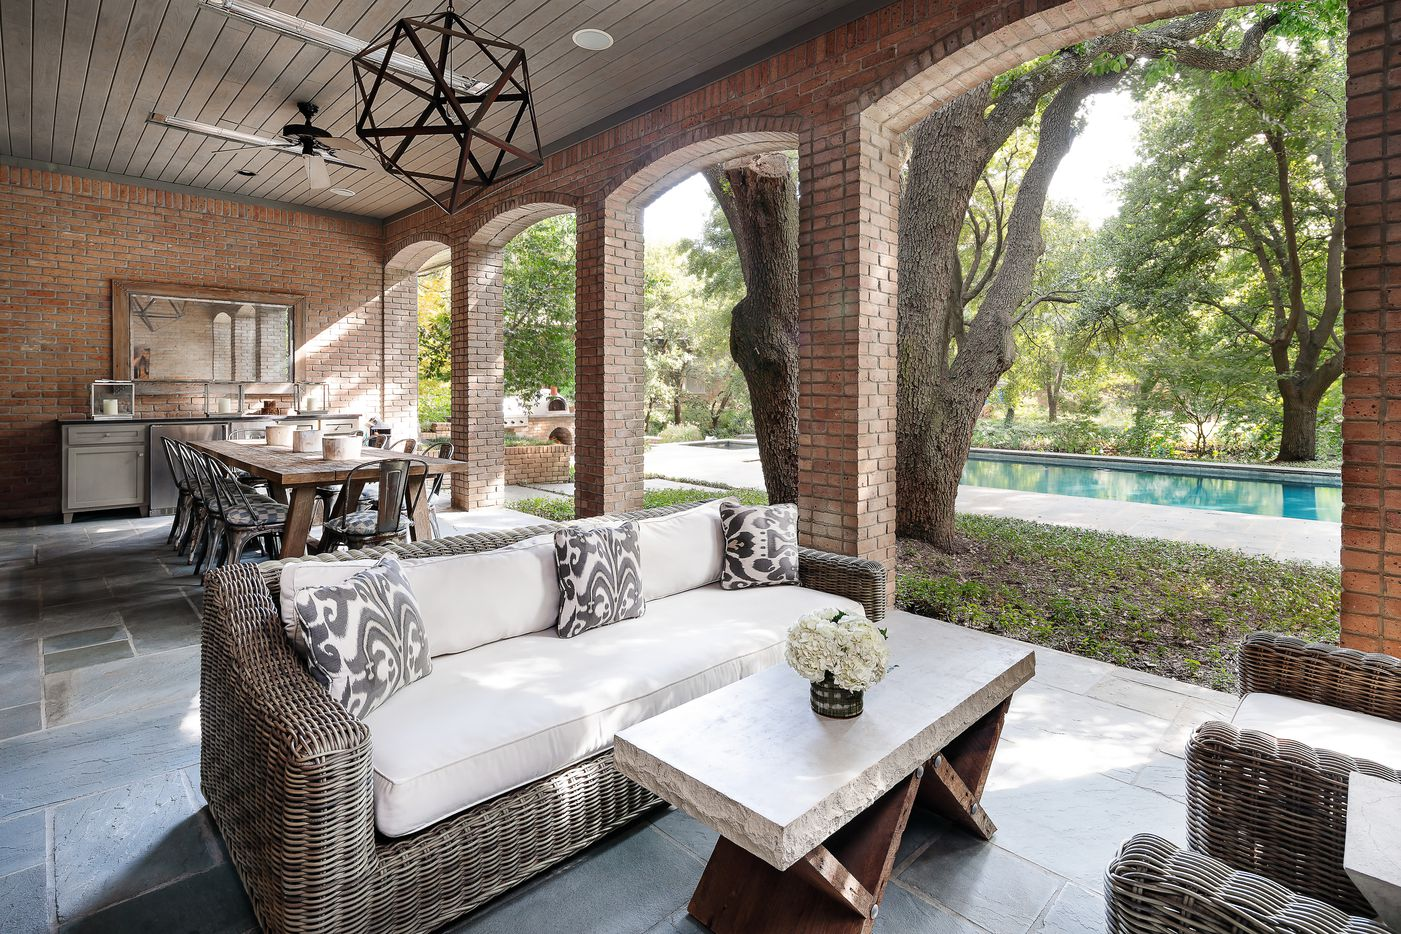 Take a look at the home at 9346 Hathaway St. in Dallas.